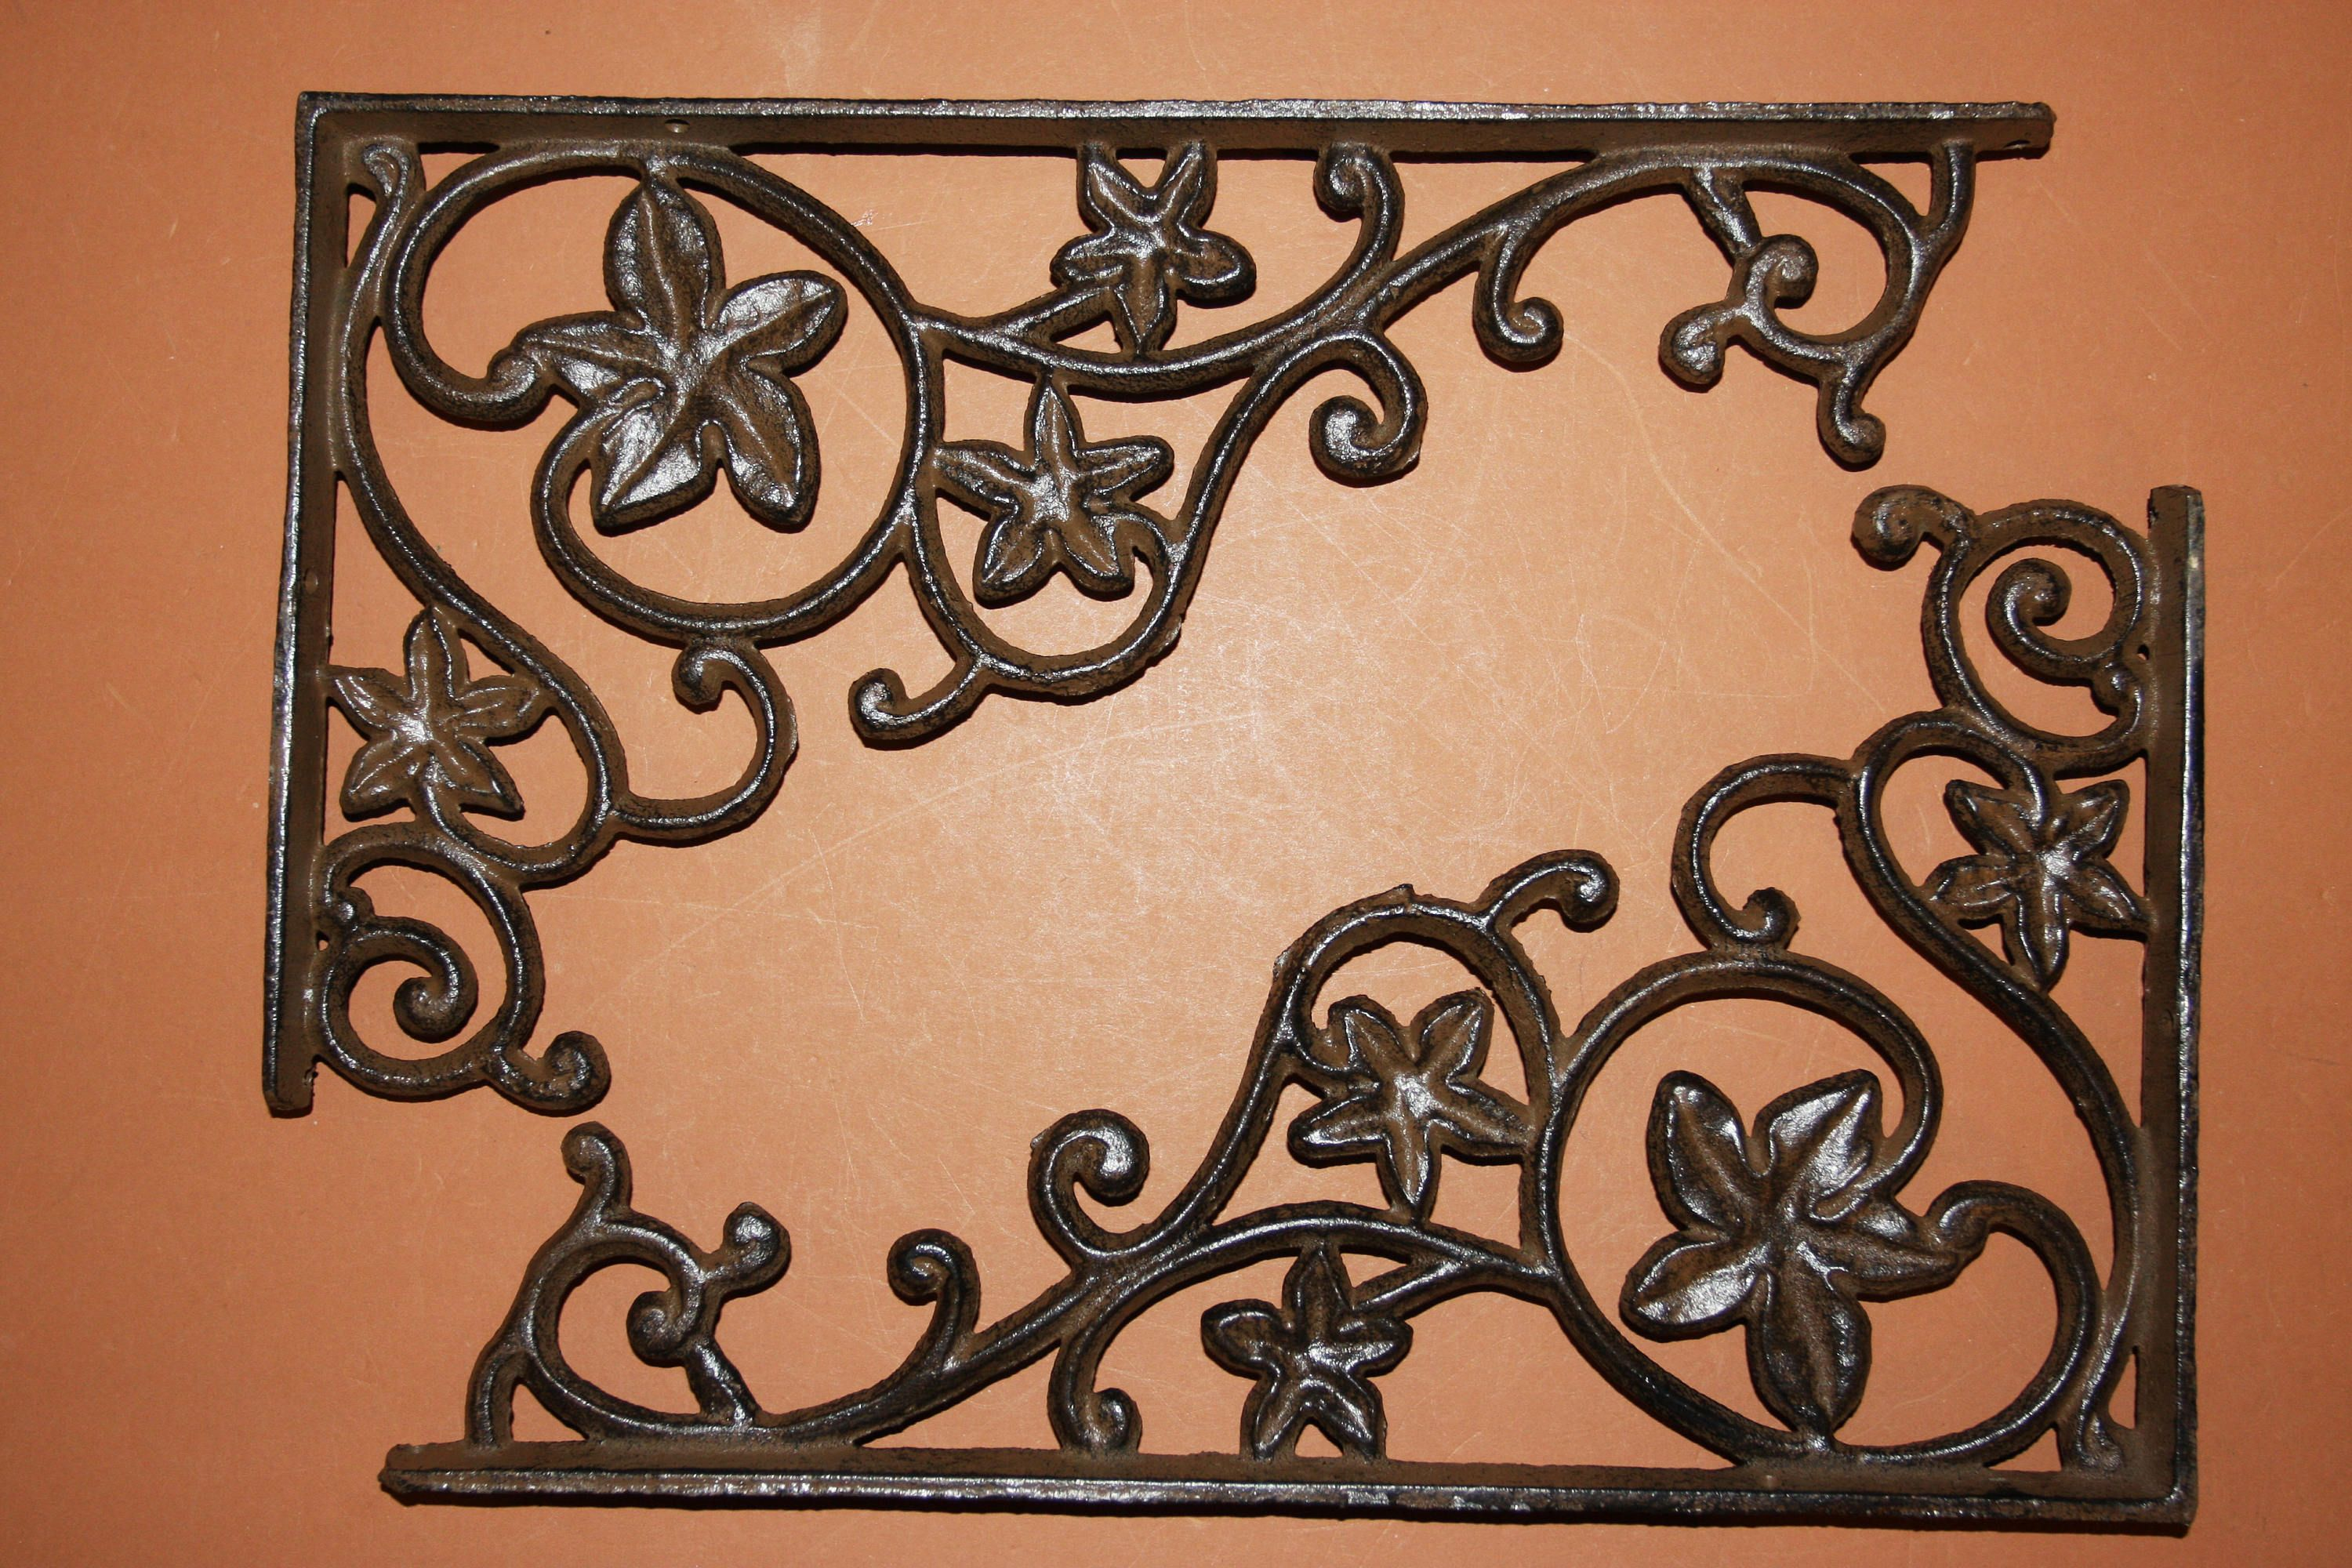 Hooks, Brackets & Curtain Rods Hardware 6 LARGE BROWN 8 SHELF BRACKETS WALL ANTIQUE-STYLE RUSTIC CAST IRON-SHELL DESIGN